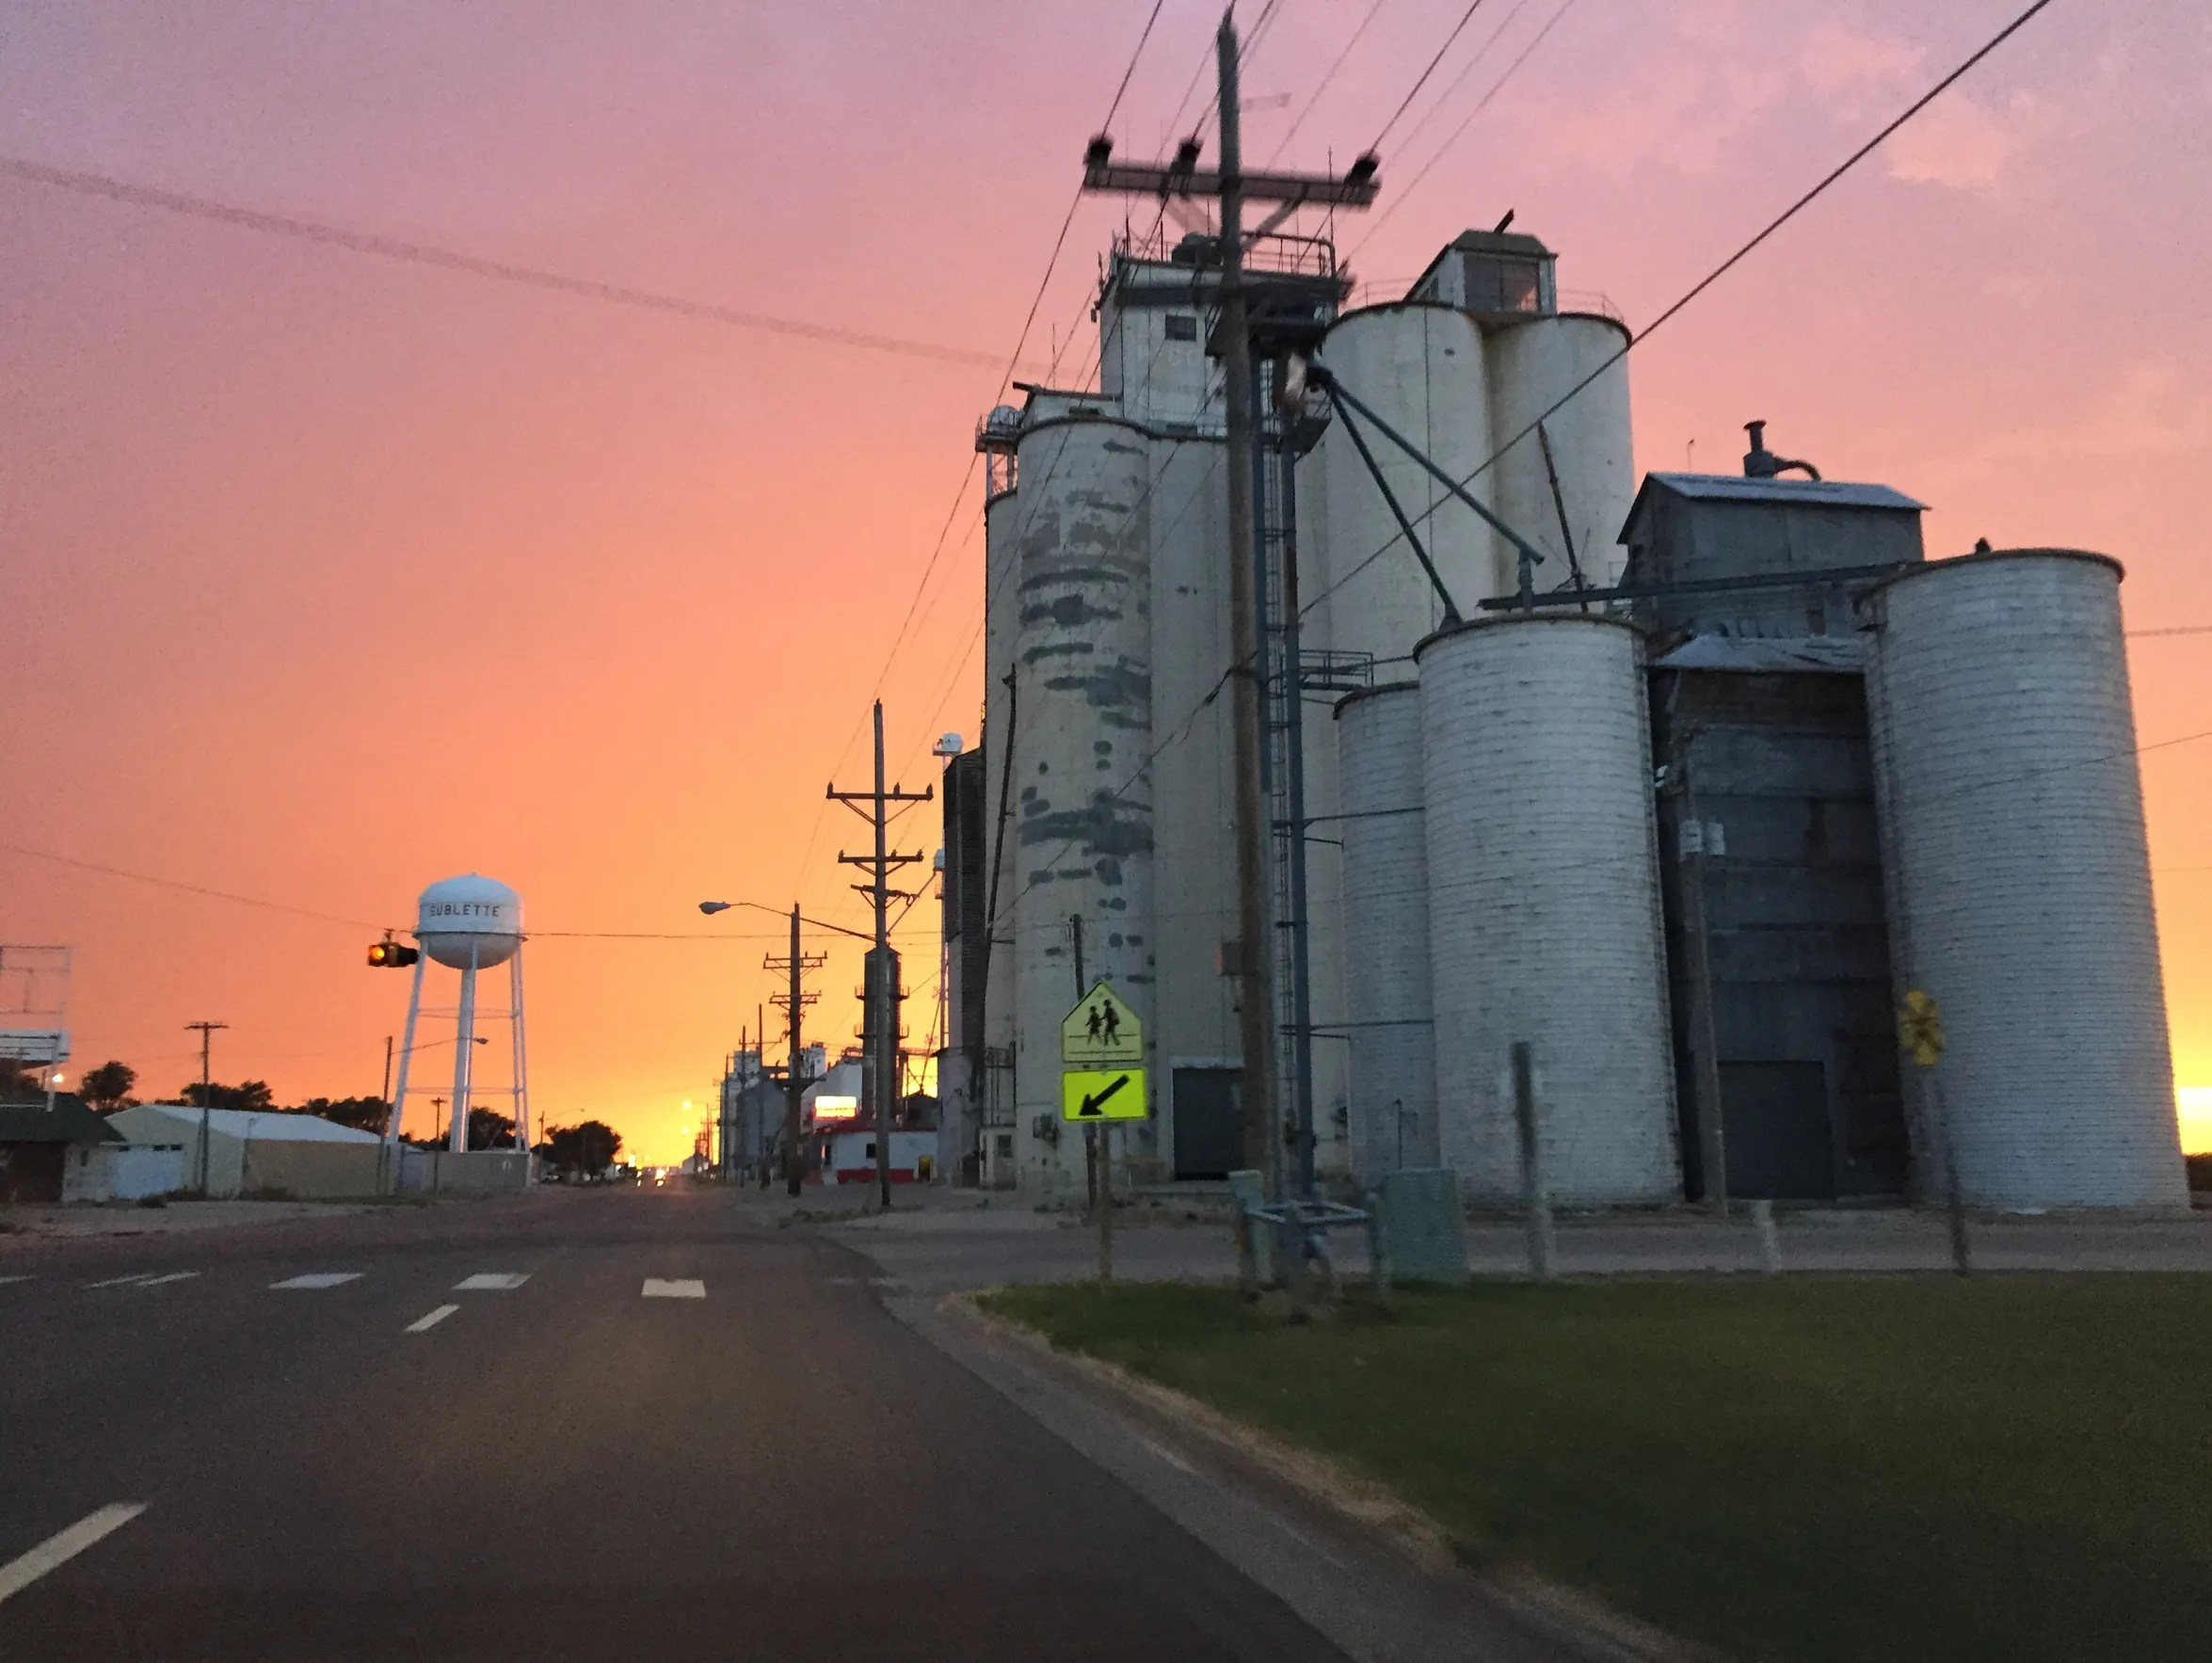 Grain elevators tower over the street in Sublette,